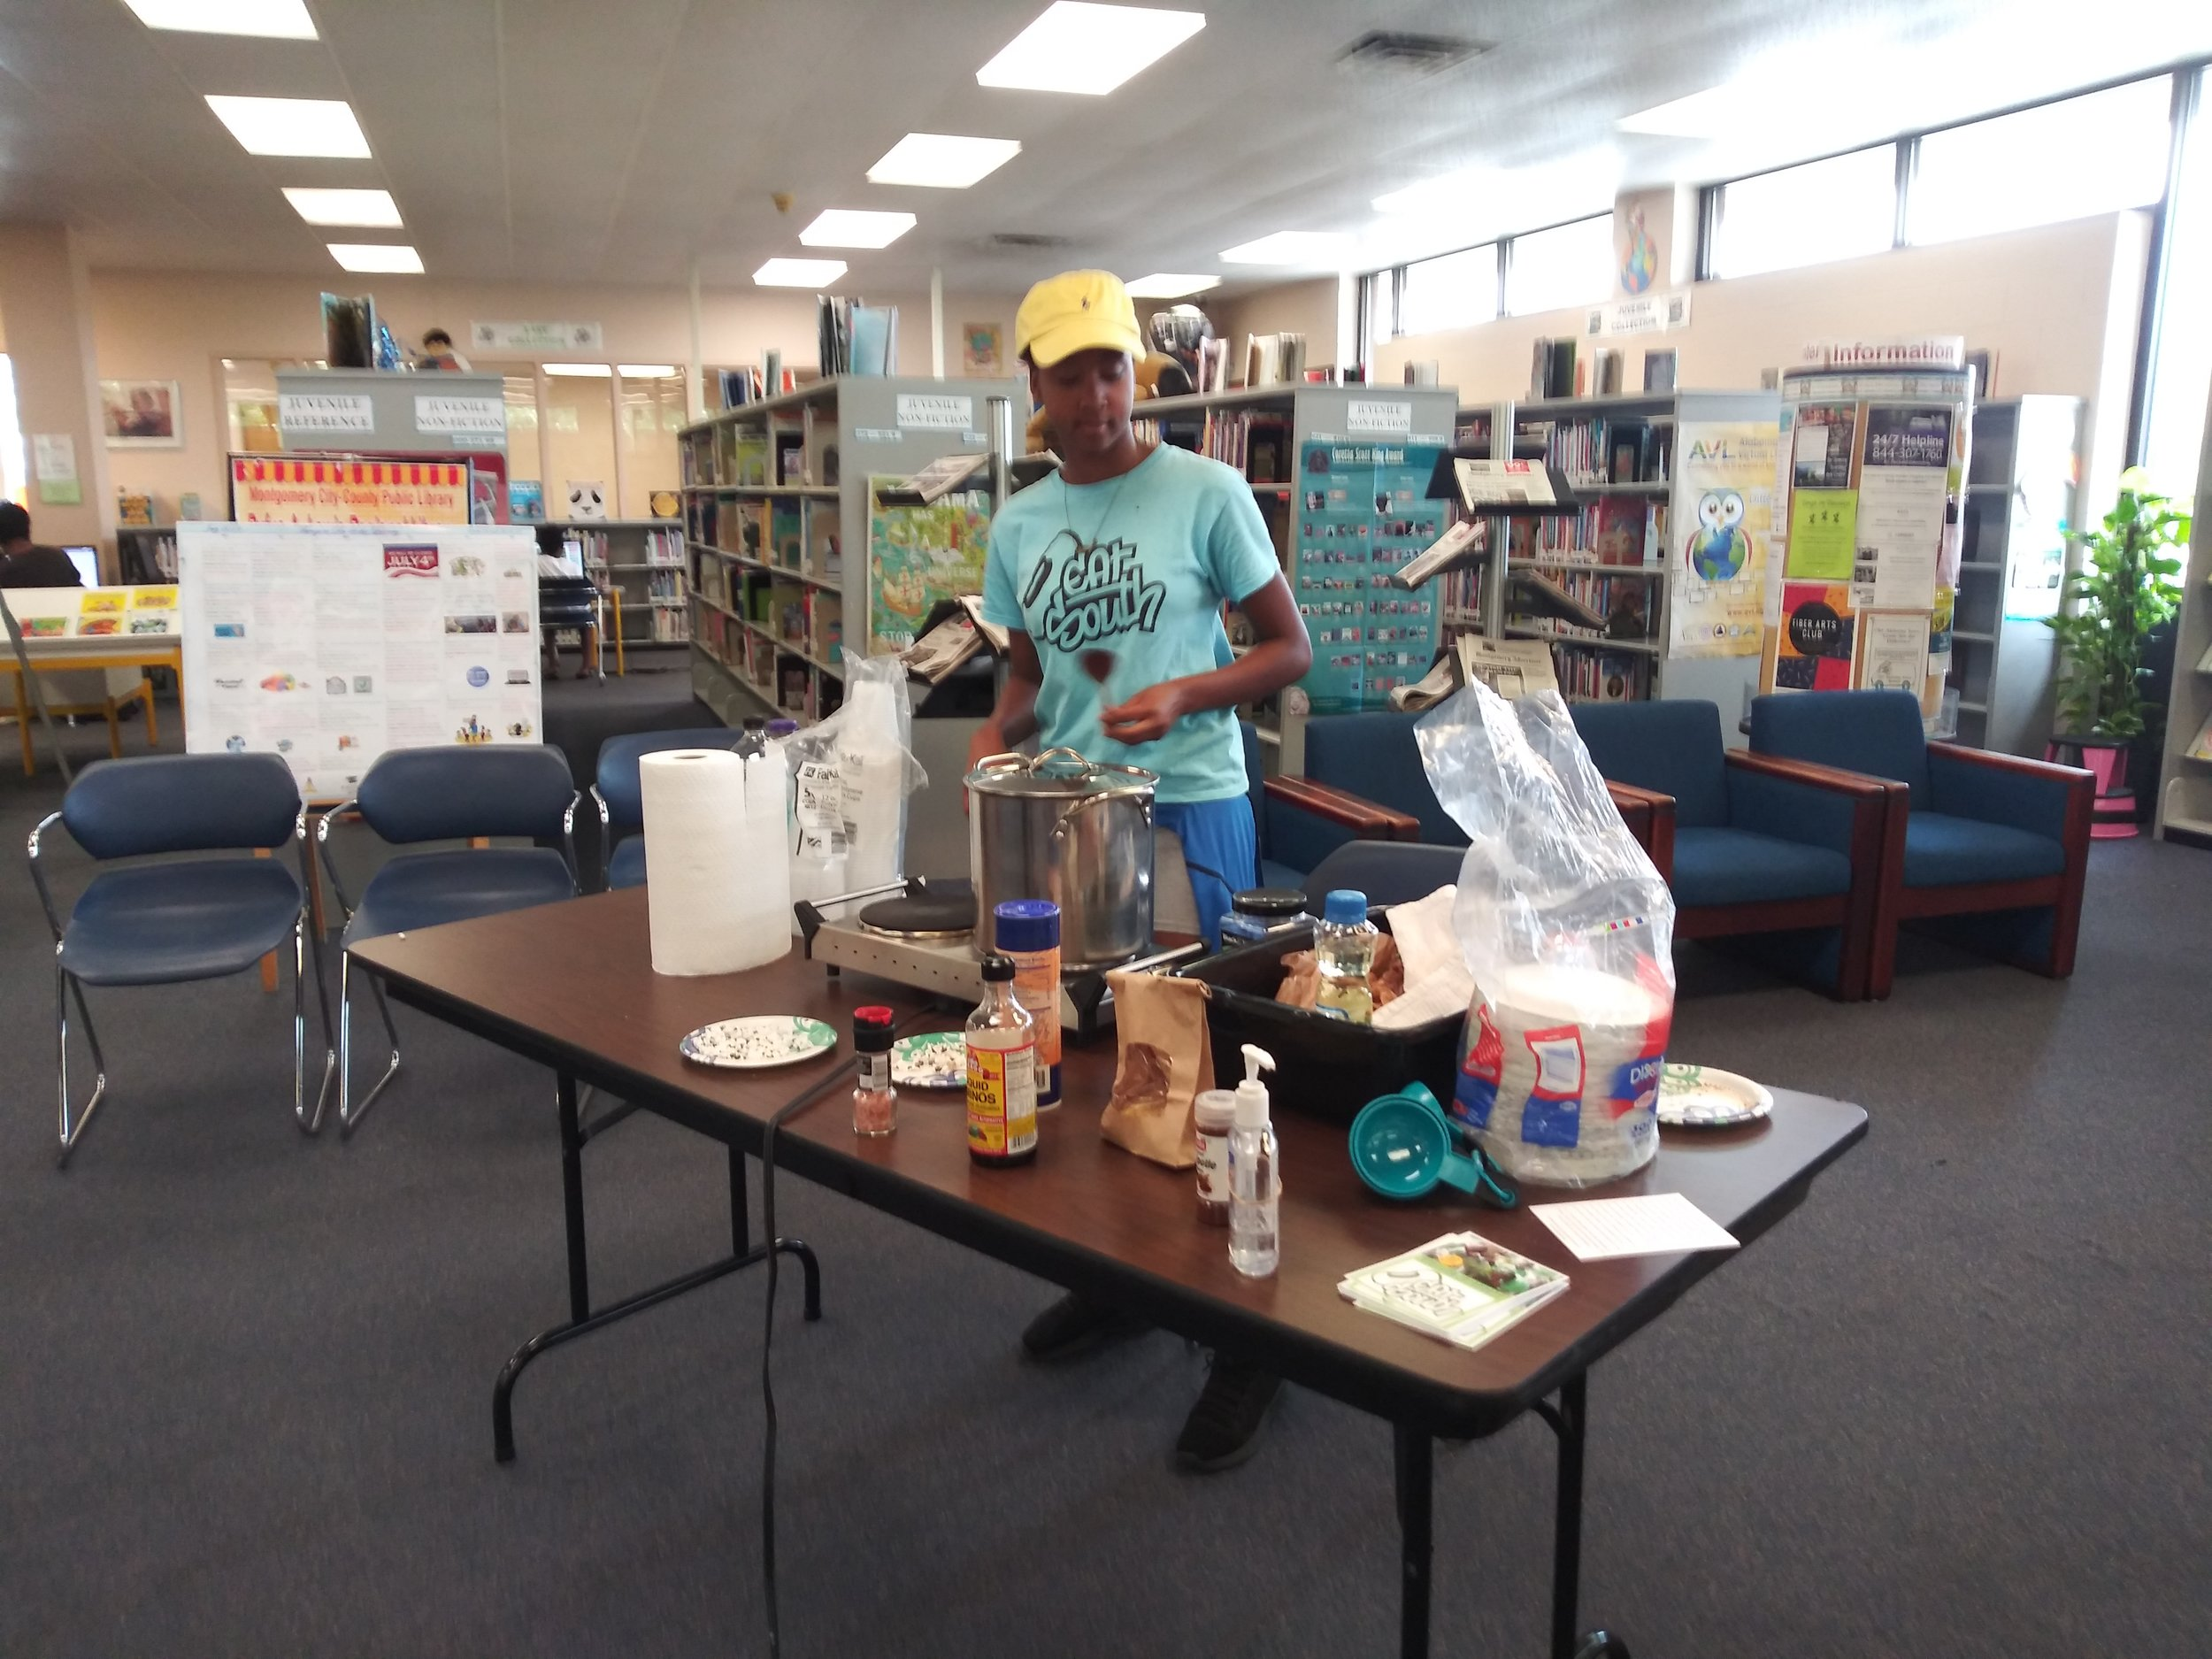 Making popcorn at the library!